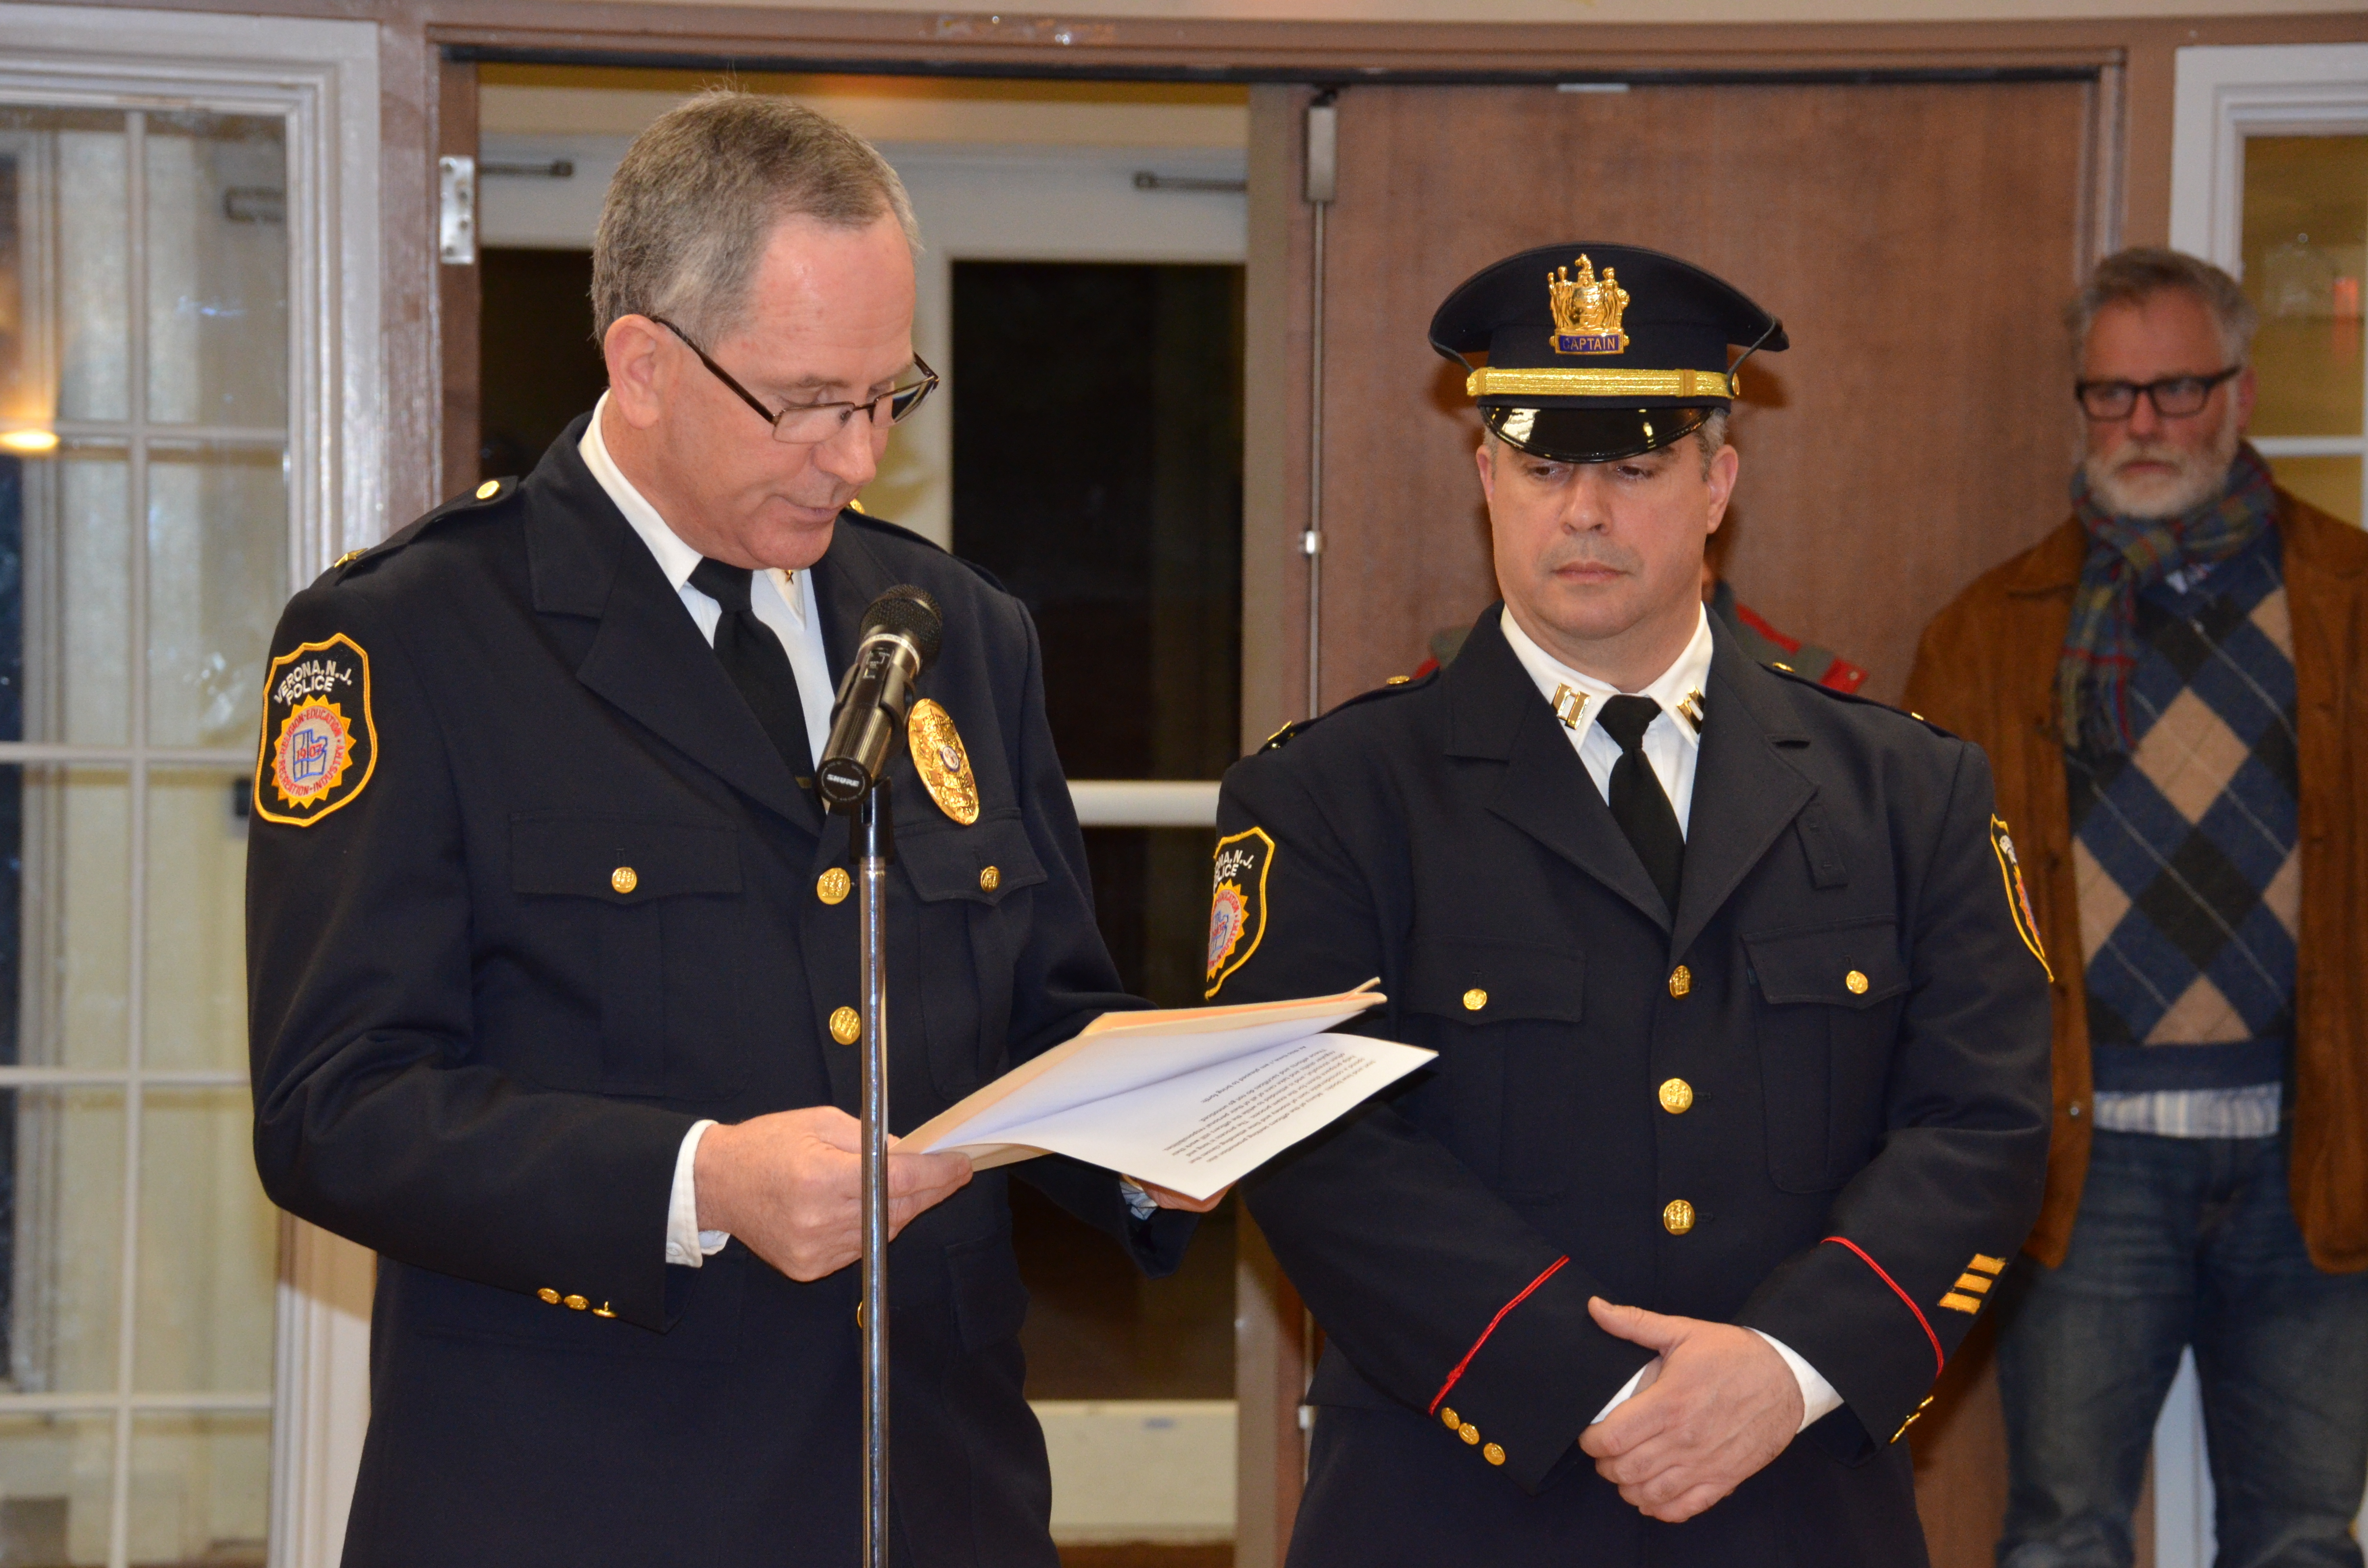 Verona police department announces promotions and new for Uniform verona